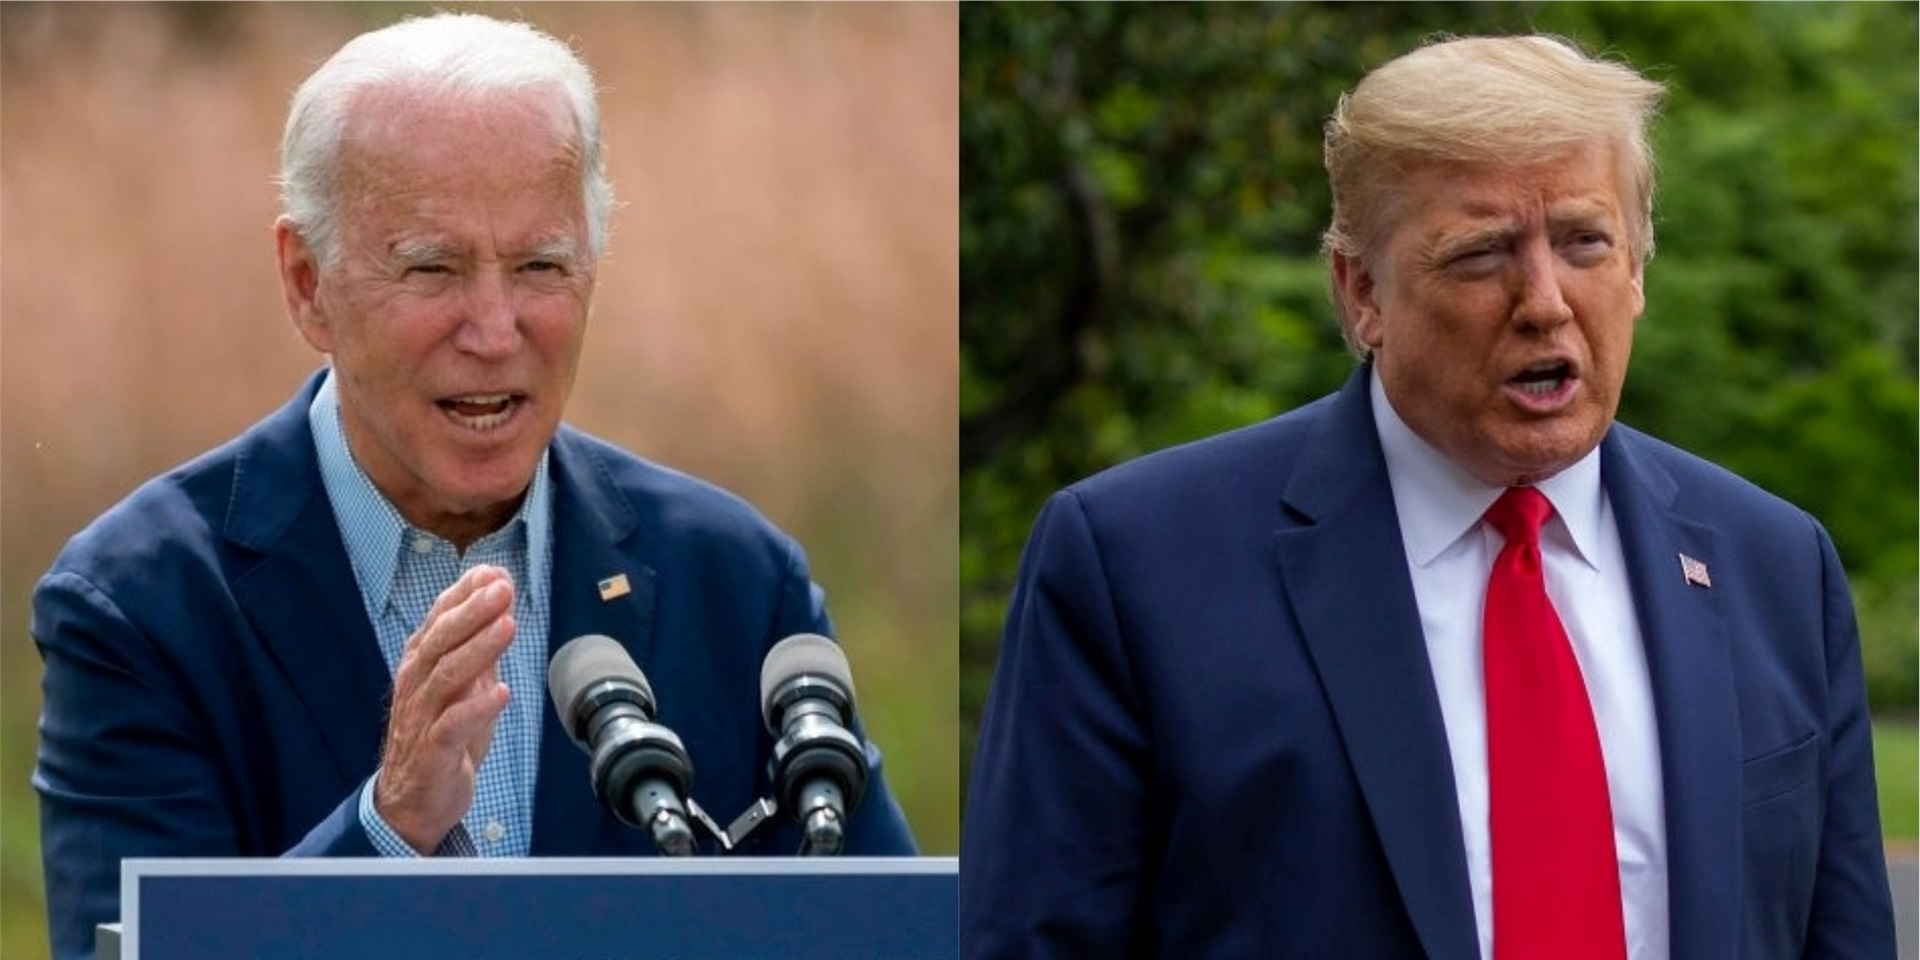 The main contenders for the 2020 presidency: Former Vice President Joe Biden and President Donald Trump.